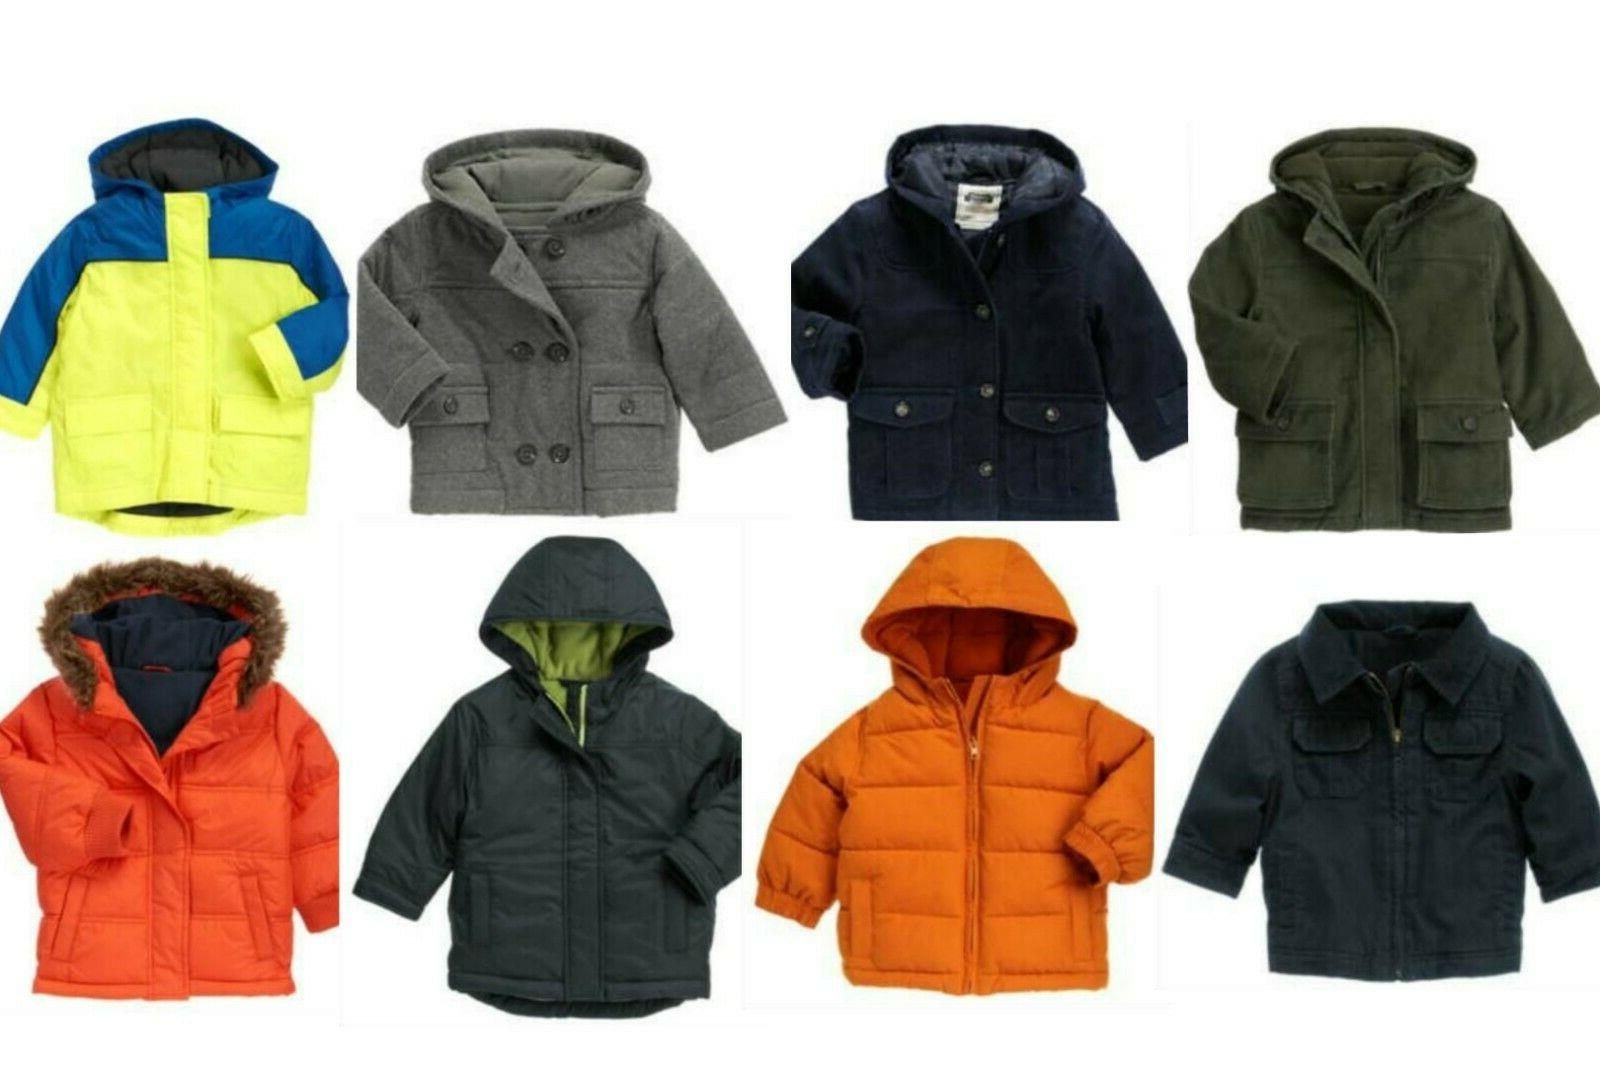 nwt baby boy winter coats jackets sizes